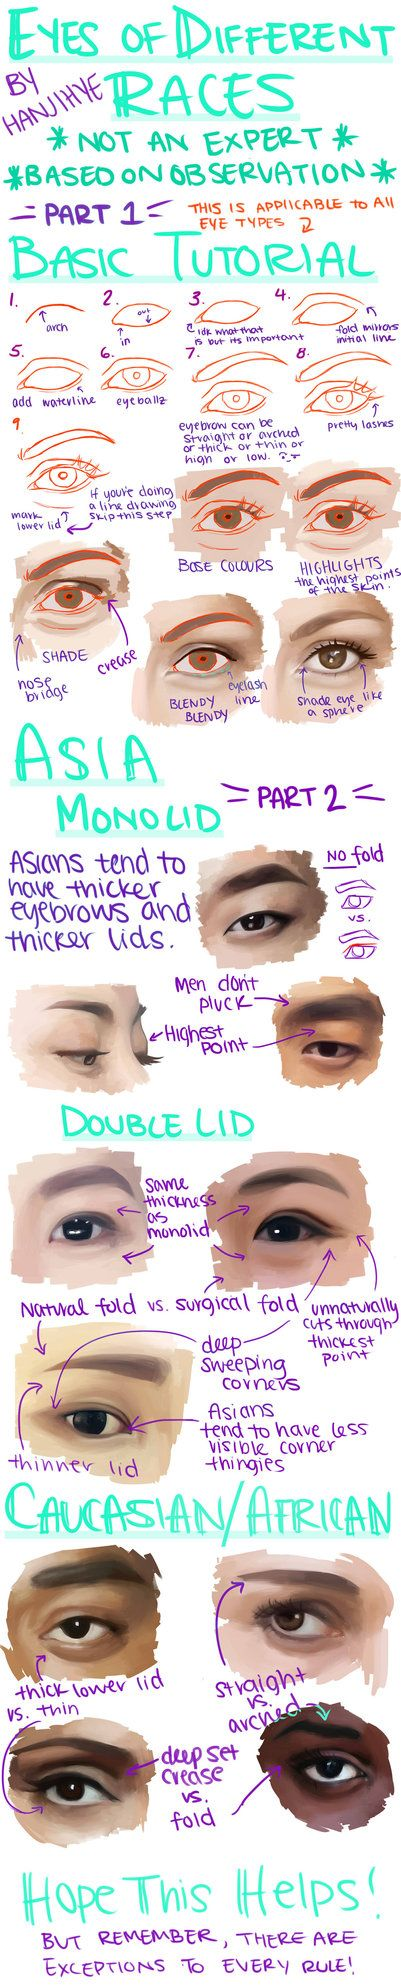 Let me know if you have questions!!!  And let me know if there's any other tutorials you want to see Eyes of Different Races Tutorial: Art Tumblr- peaceofseoul.tumblr.com/ Personal Tumblr...